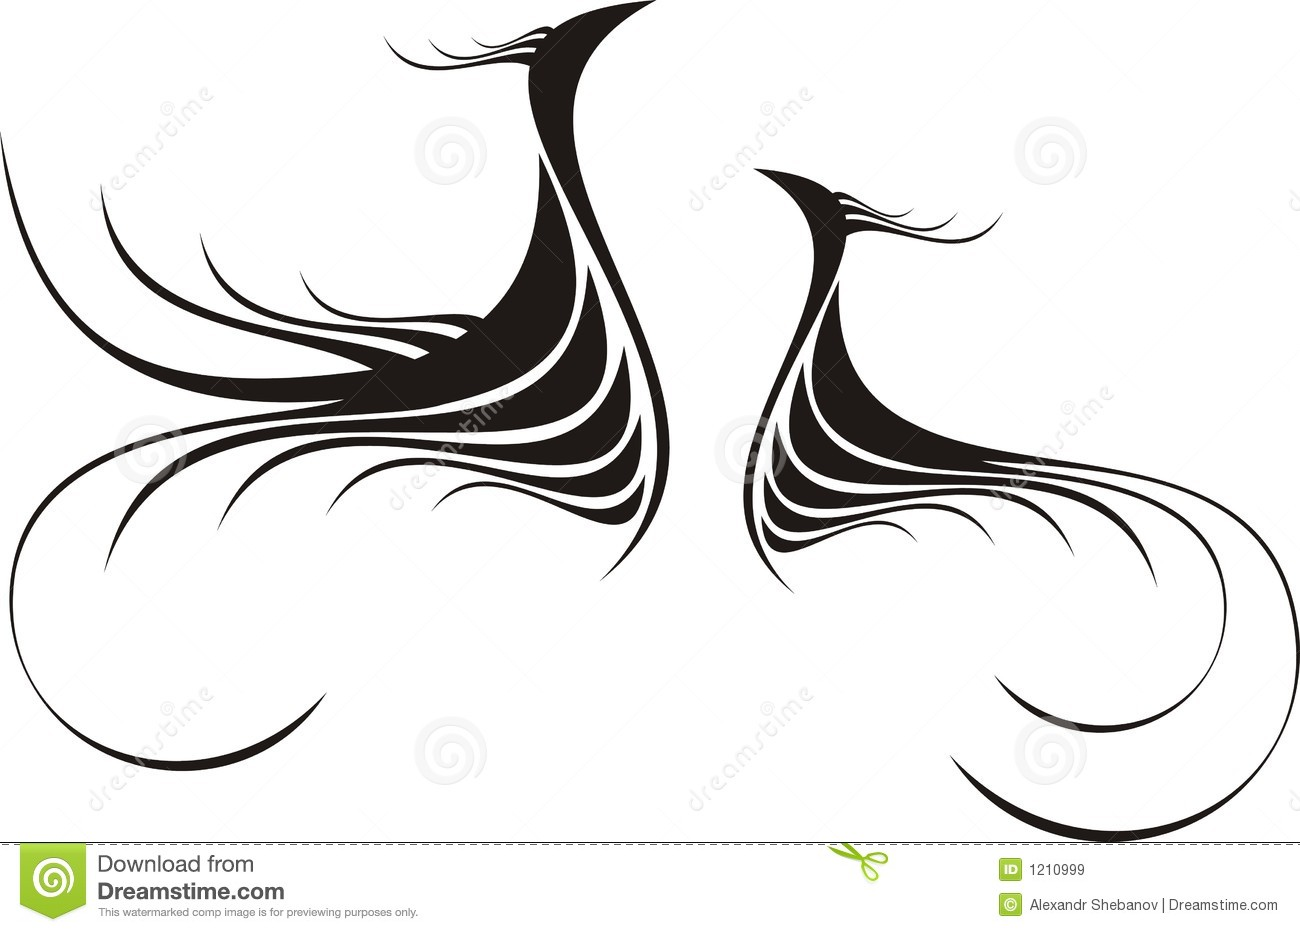 Abstract Calligraphy Decorative Stock Vector Image 1210999